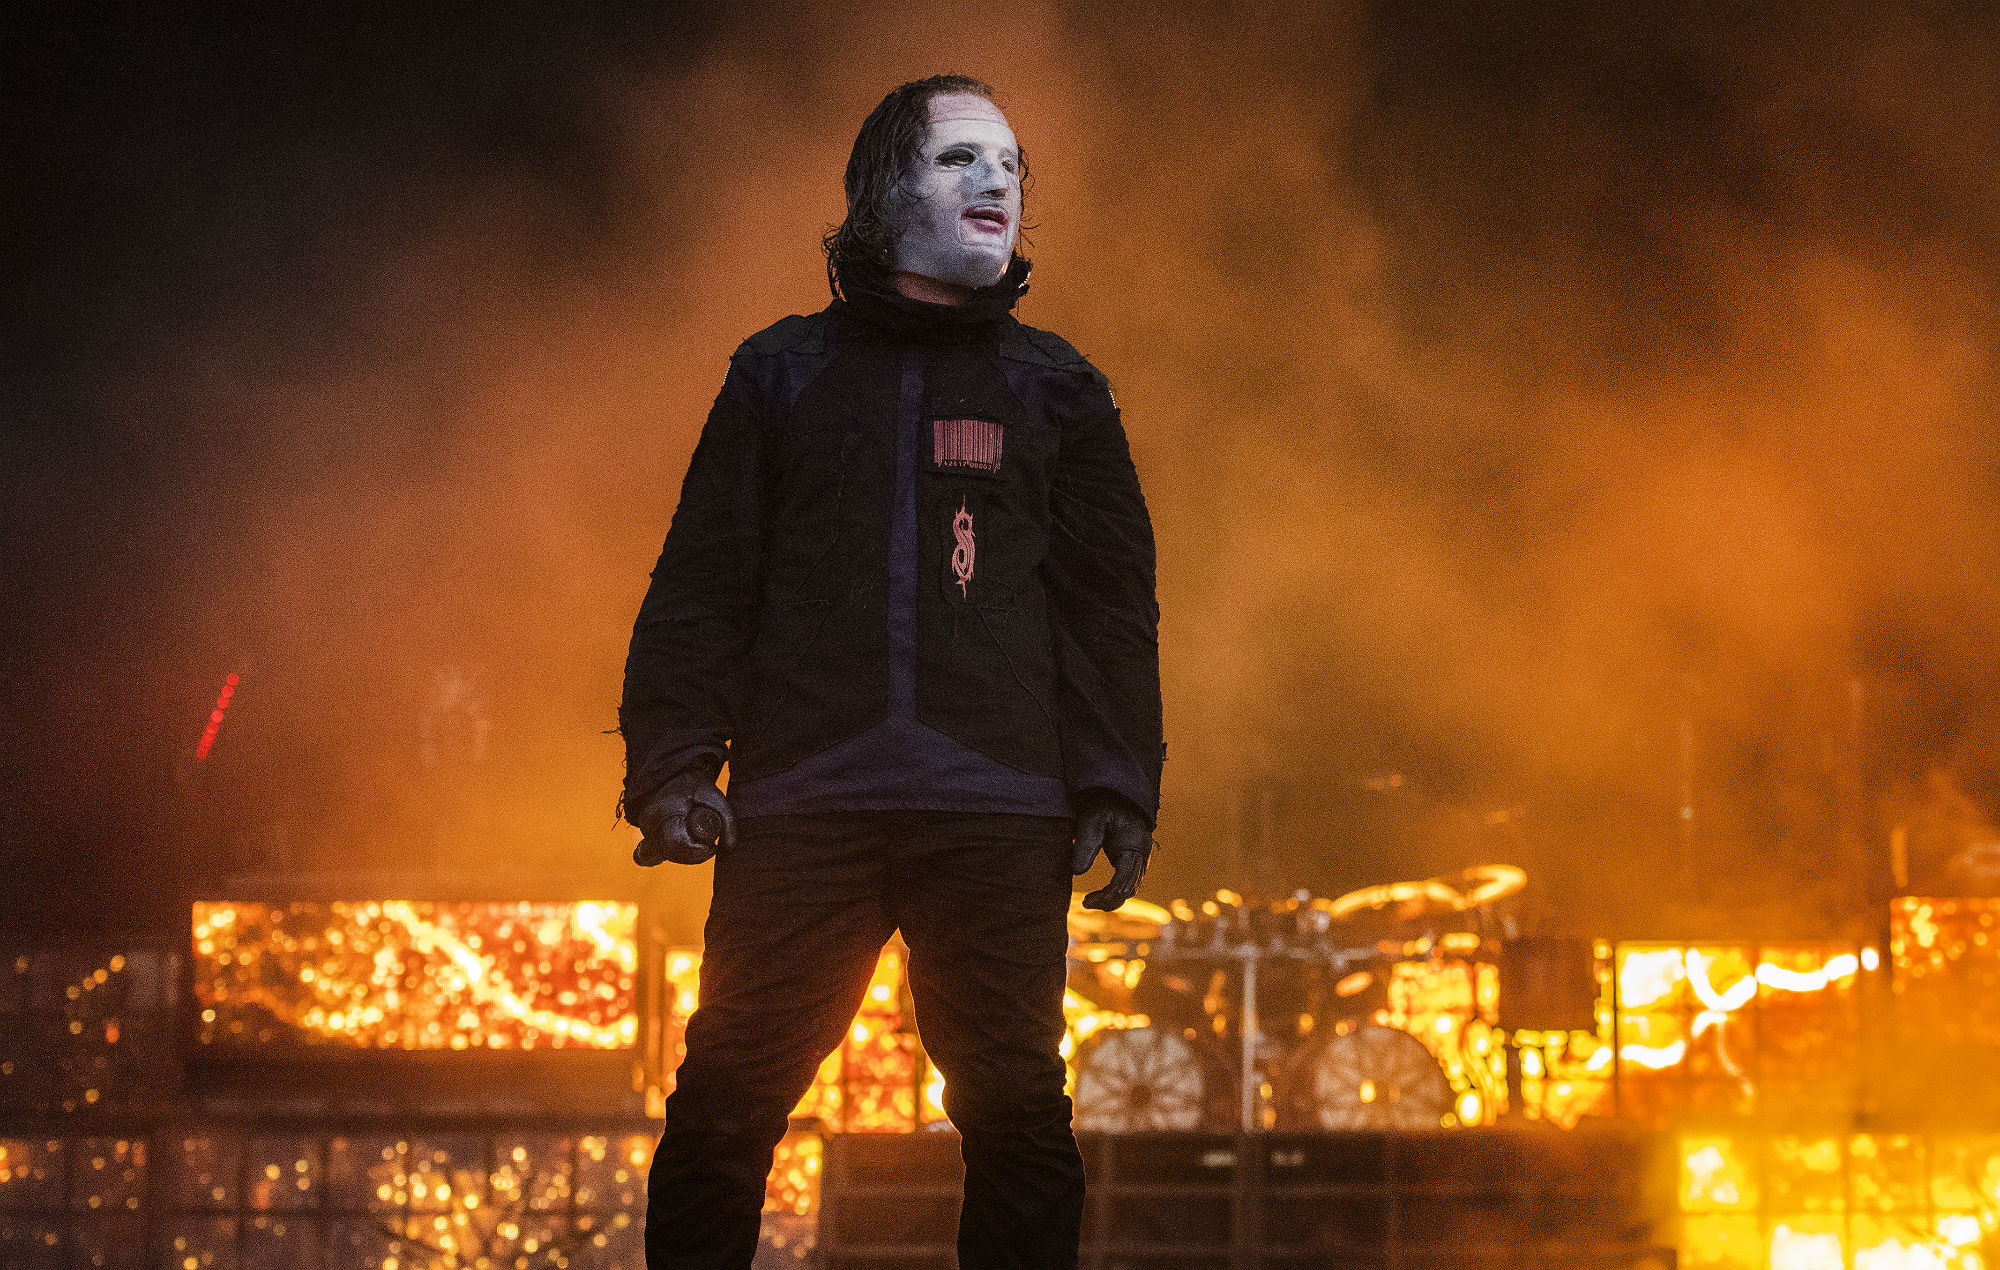 Slipknot's Corey Taylor explains the meaning of new album title 'We